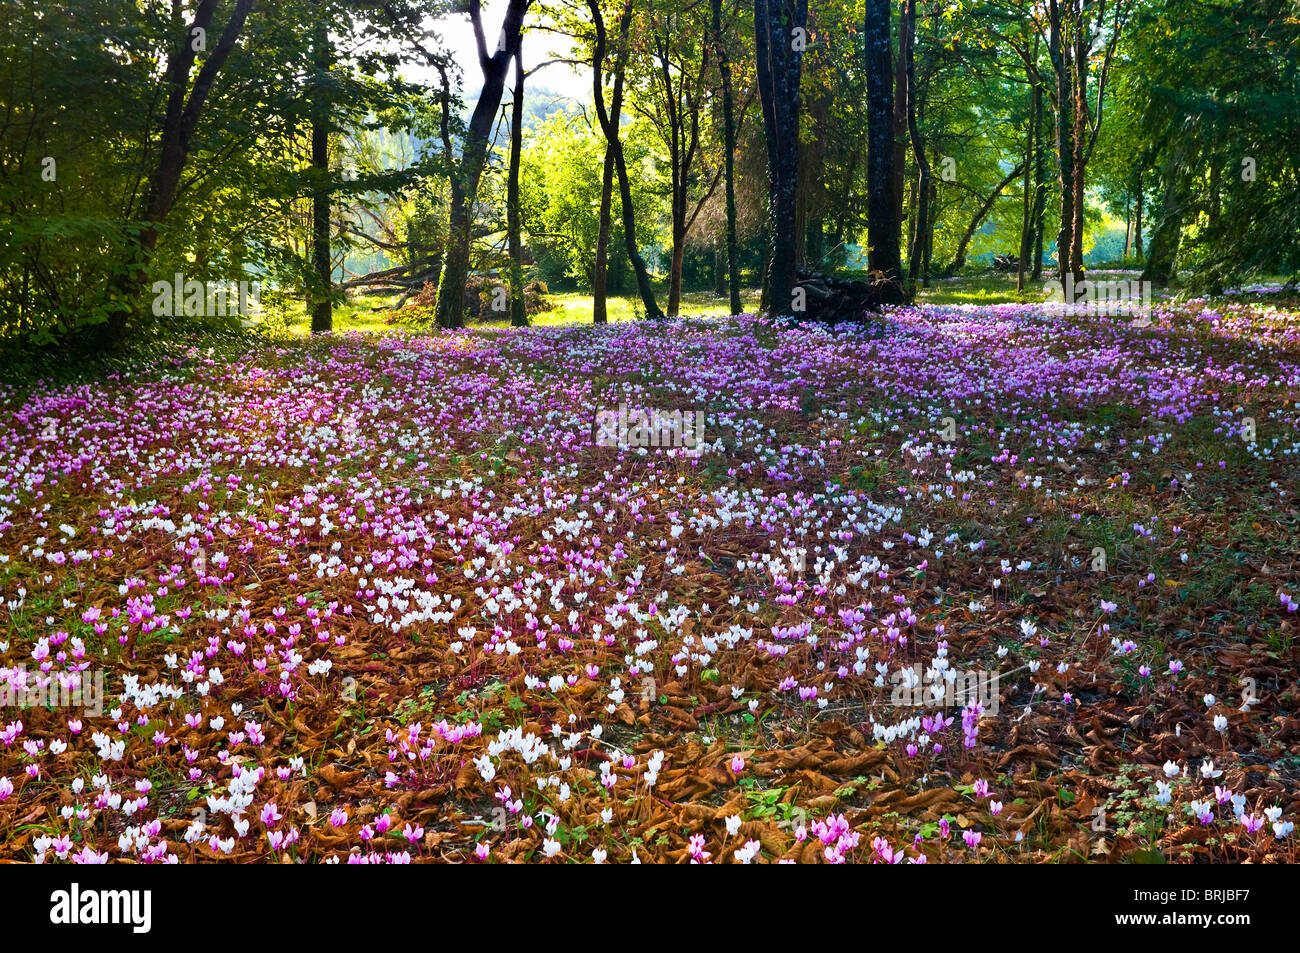 wild wild cyclamen stockfotos wild wild cyclamen bilder alamy. Black Bedroom Furniture Sets. Home Design Ideas